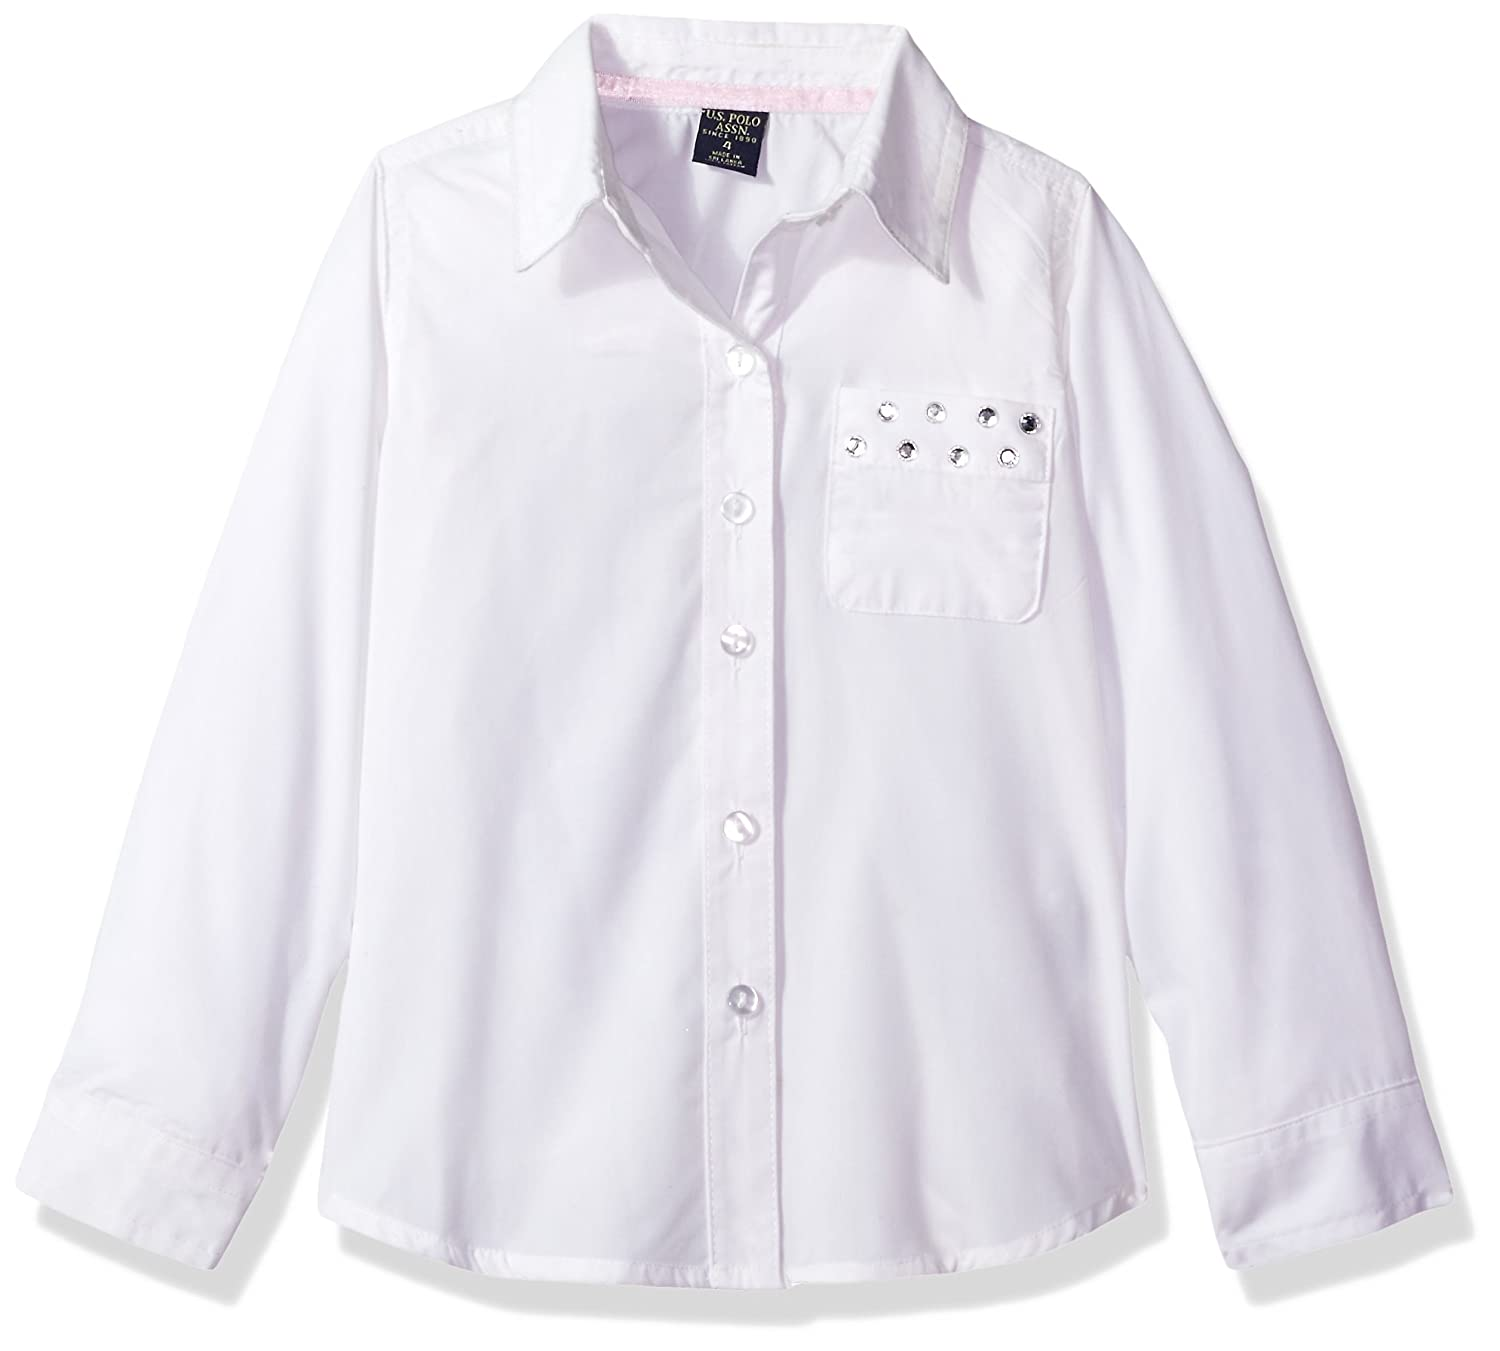 U.S. Polo Assn. Girls School Uniform Blouse, HV68_1